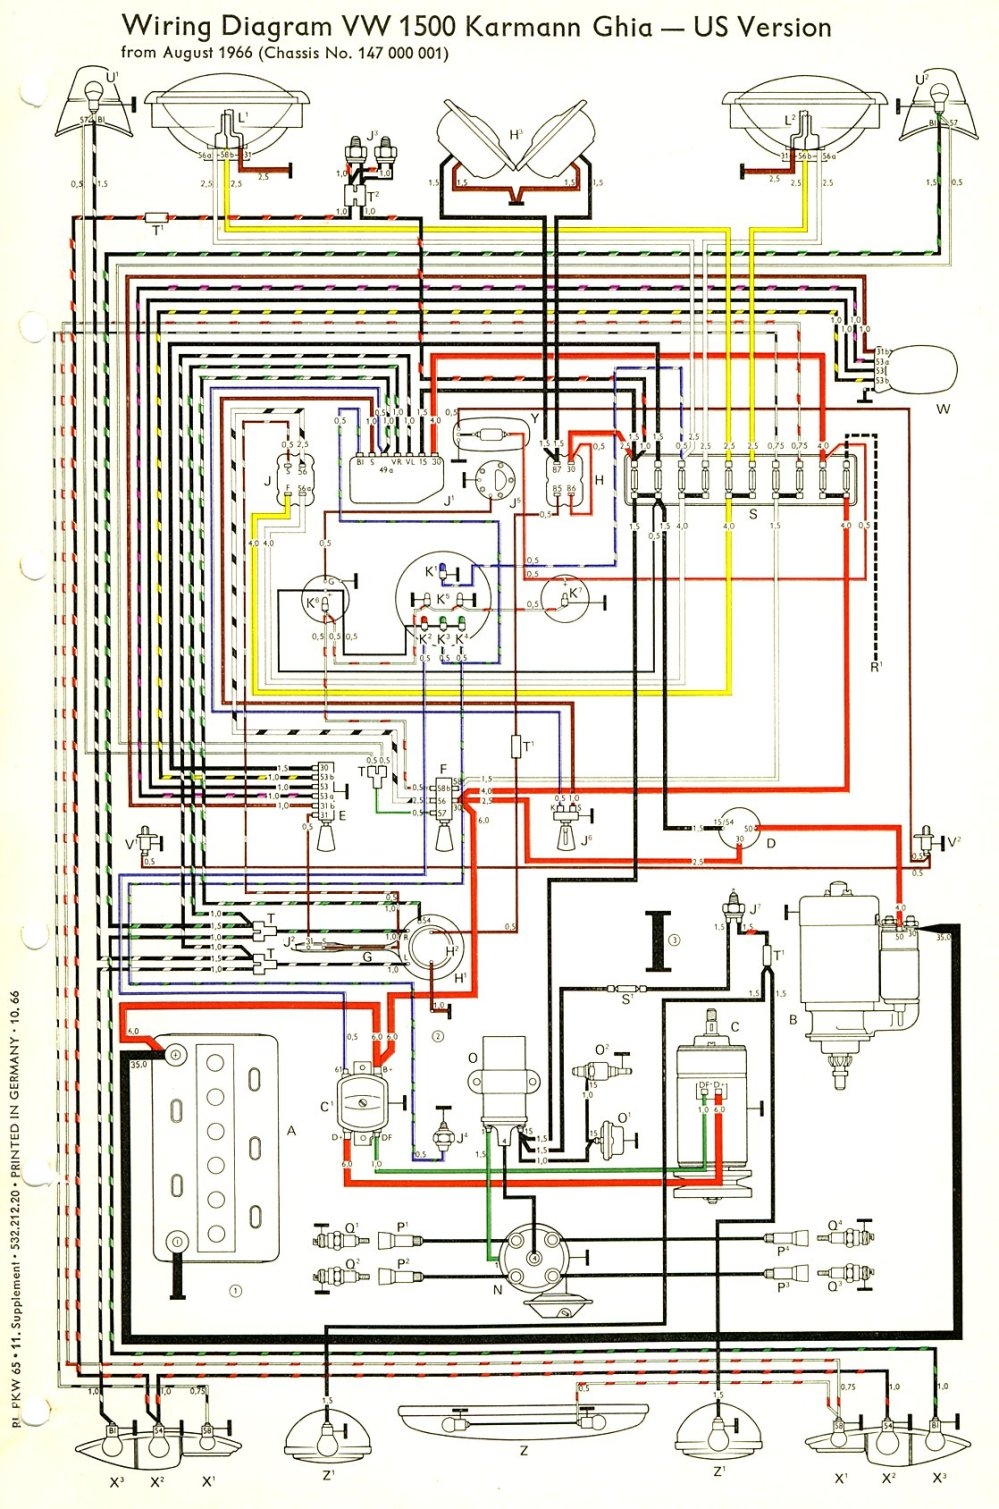 medium resolution of ghia wiring diagram wiring diagrams electrical wiring diagrams for motorcycles ferrari electrical wiring diagram